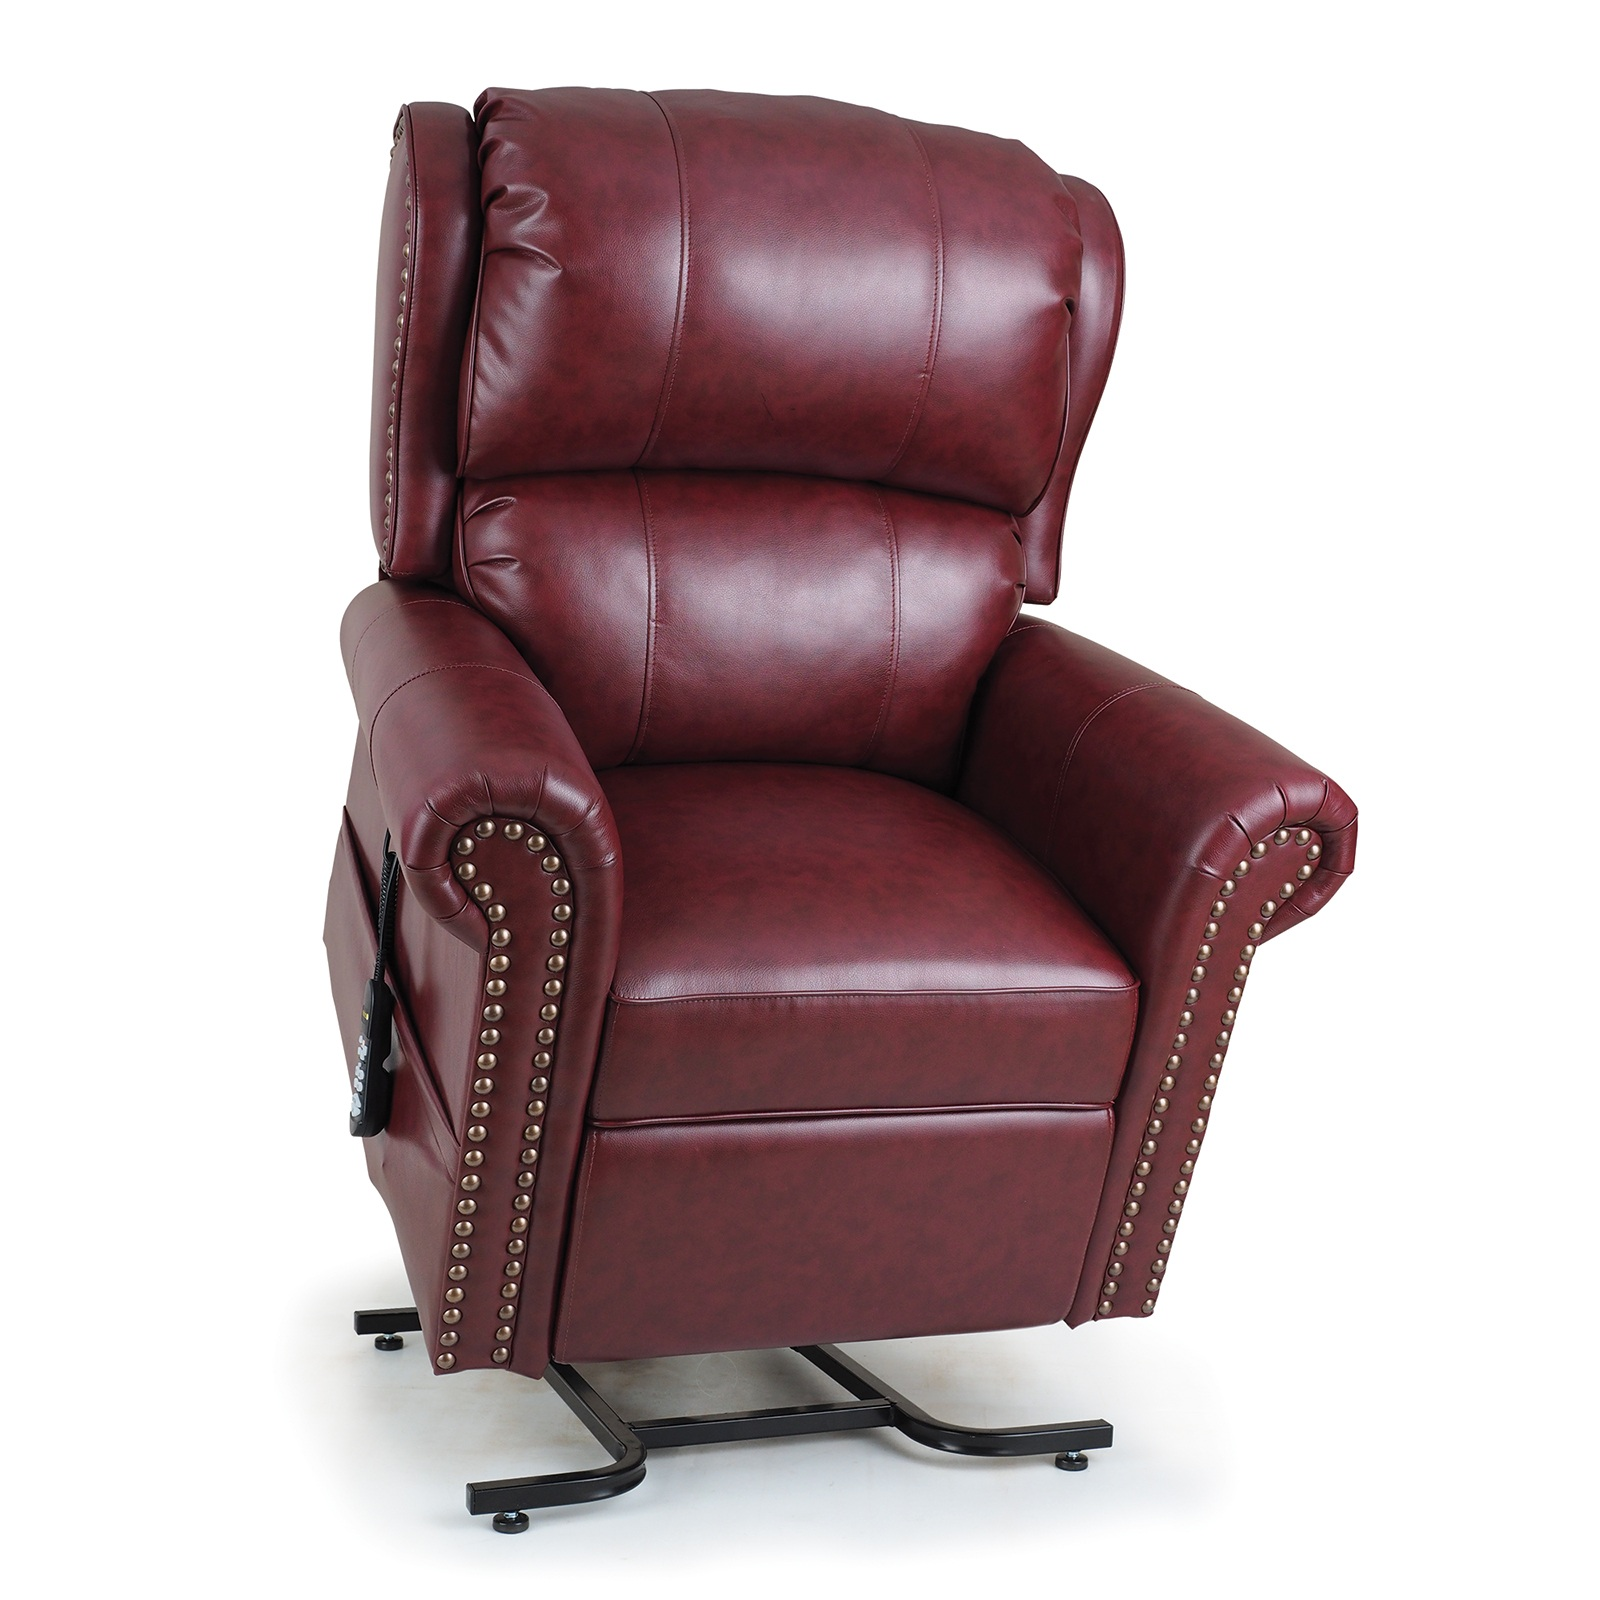 Lift Chair Recliners Quotpub Quot Lift Chair Northeast Mobility